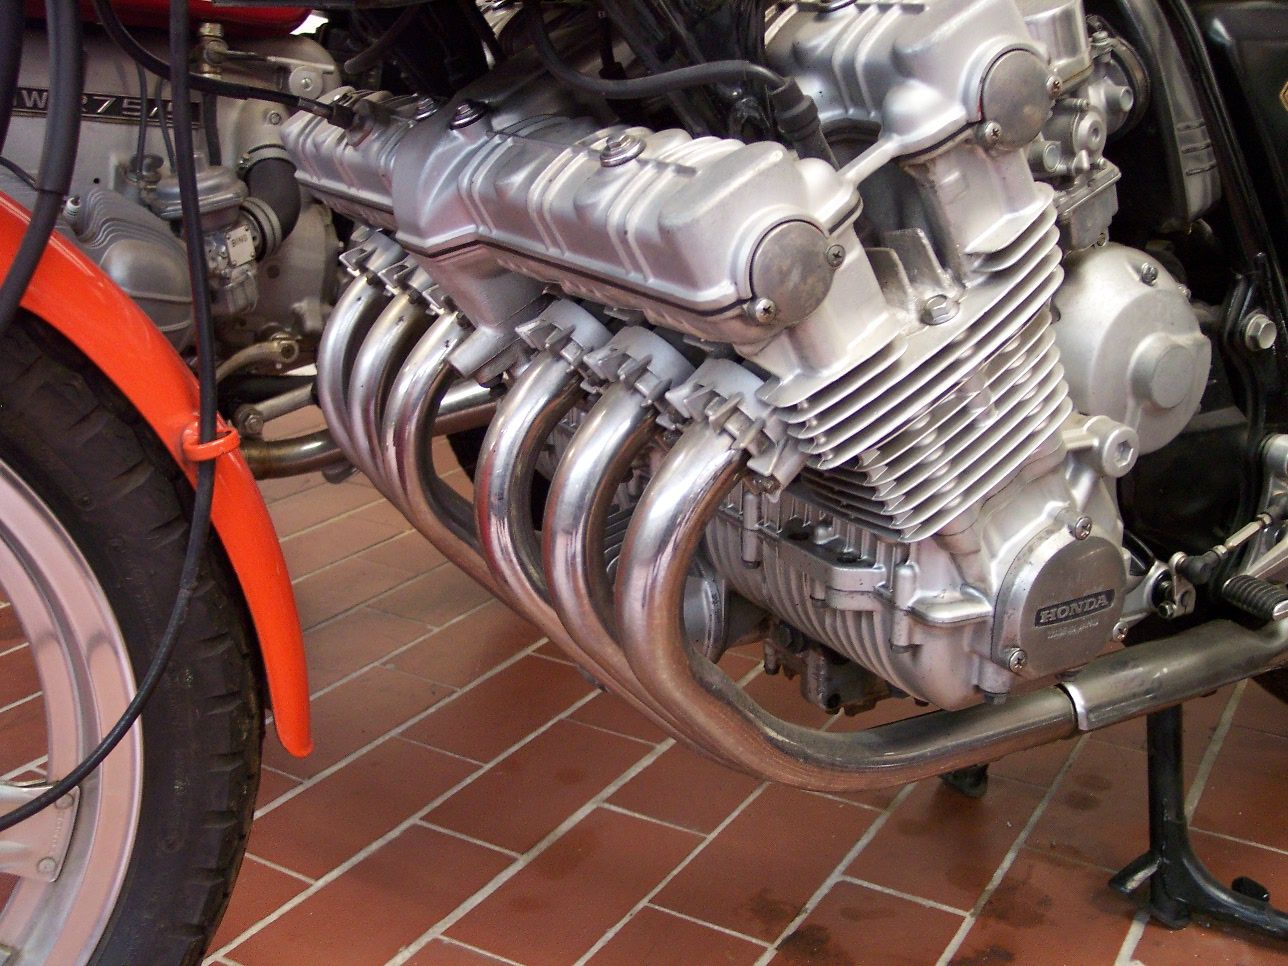 hight resolution of file honda cbx engine detail jpg